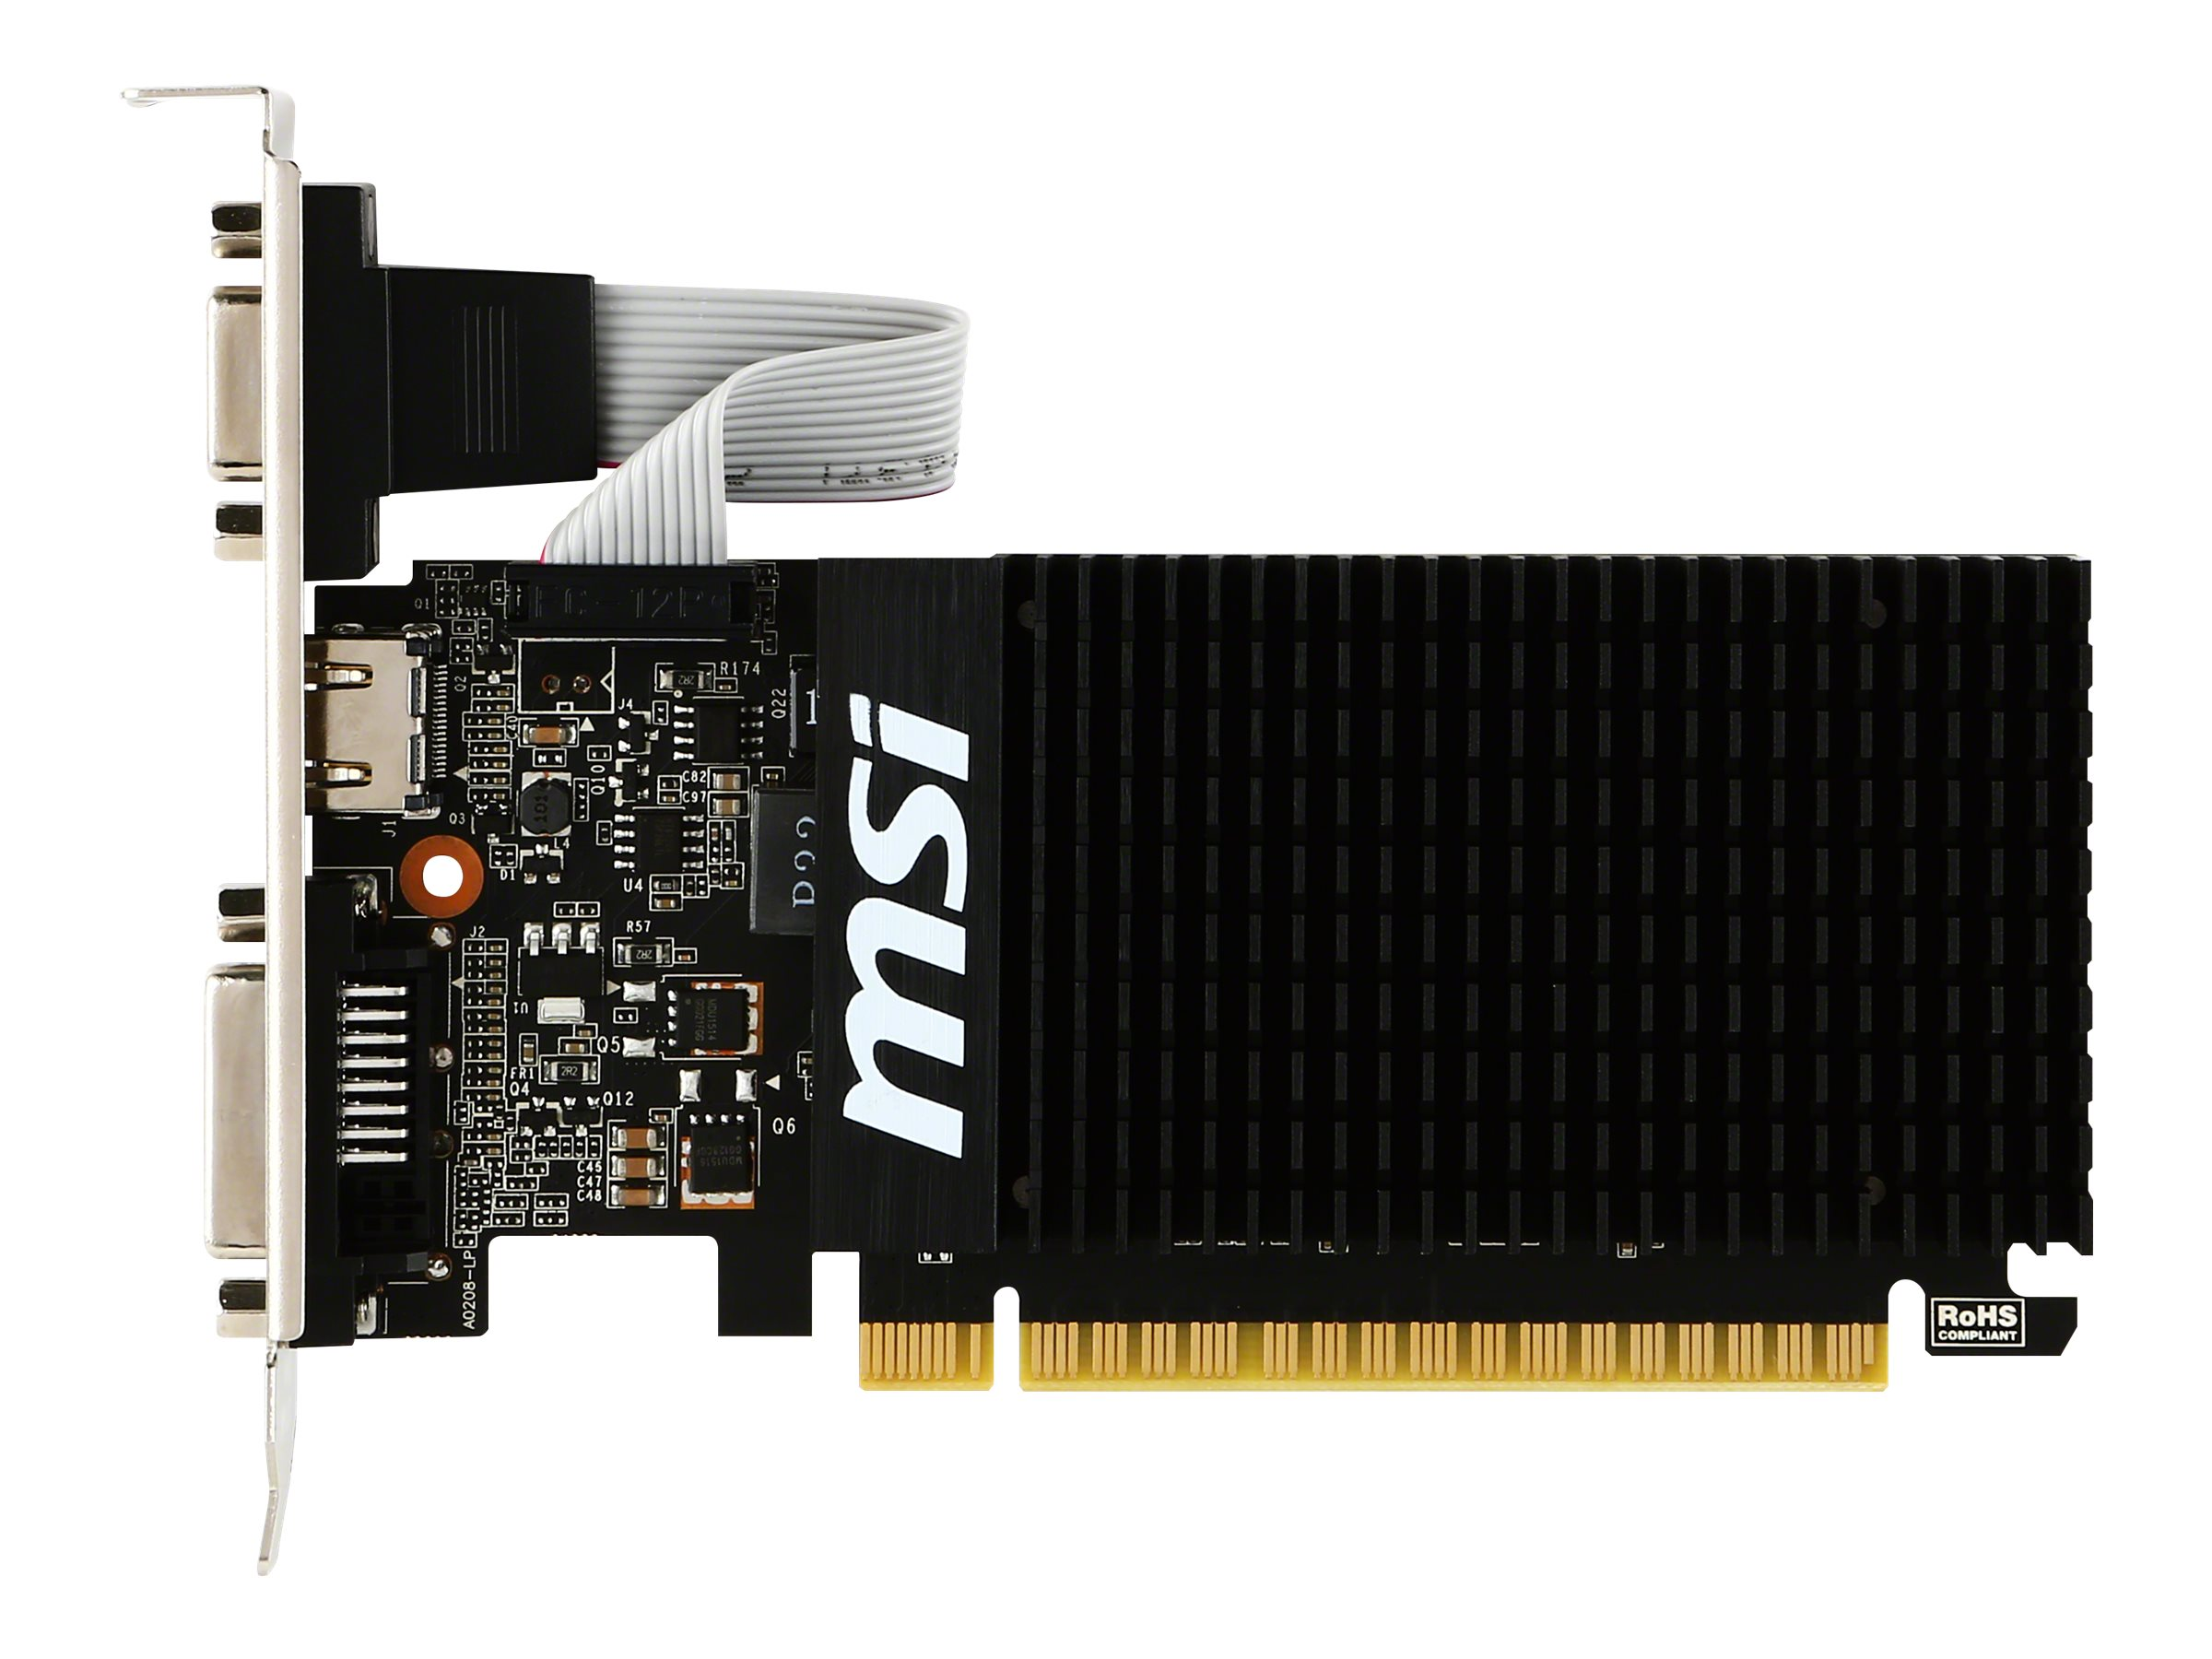 Microstar GeForce GT 710 PCIe 2.0 x8 Graphics Card, 2GB DDR3, GT 710 2GD3H LP, 31432893, Graphics/Video Accelerators